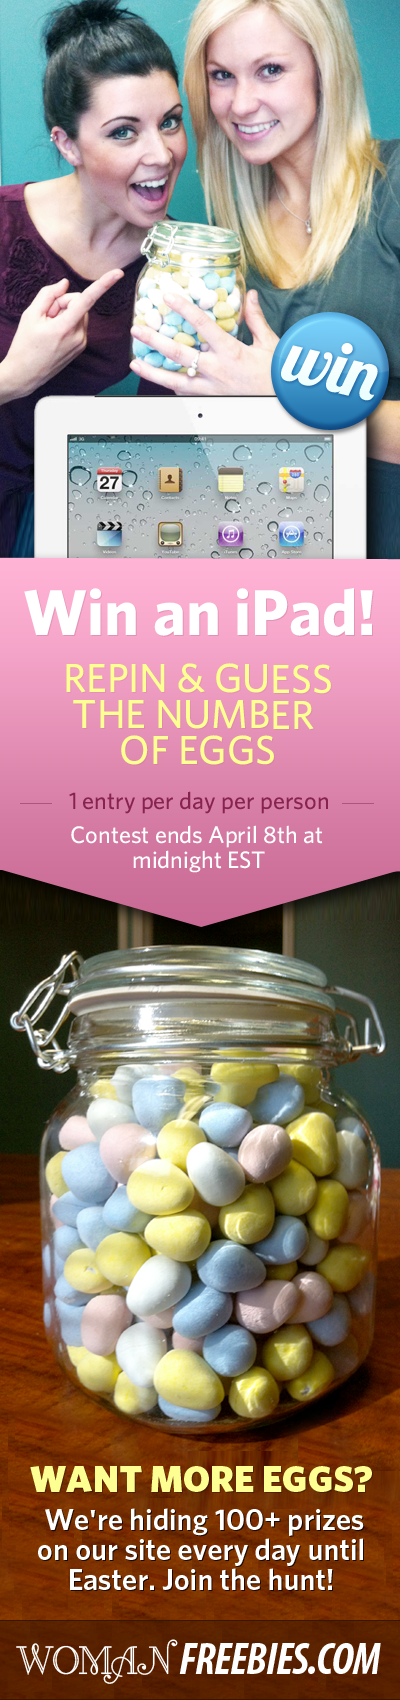 Join the Hunt! We're hiding 100+ prizes on WomanFreebies.com every day until Easter.  We'd love it if you could share this with your friends on Facebook :)    All correct guesses will be entered into a draw to win a 3rd generation iPad on April 9th. Make sure you're following us so we can contact you if you win! #sweepstakes #ipad #easter